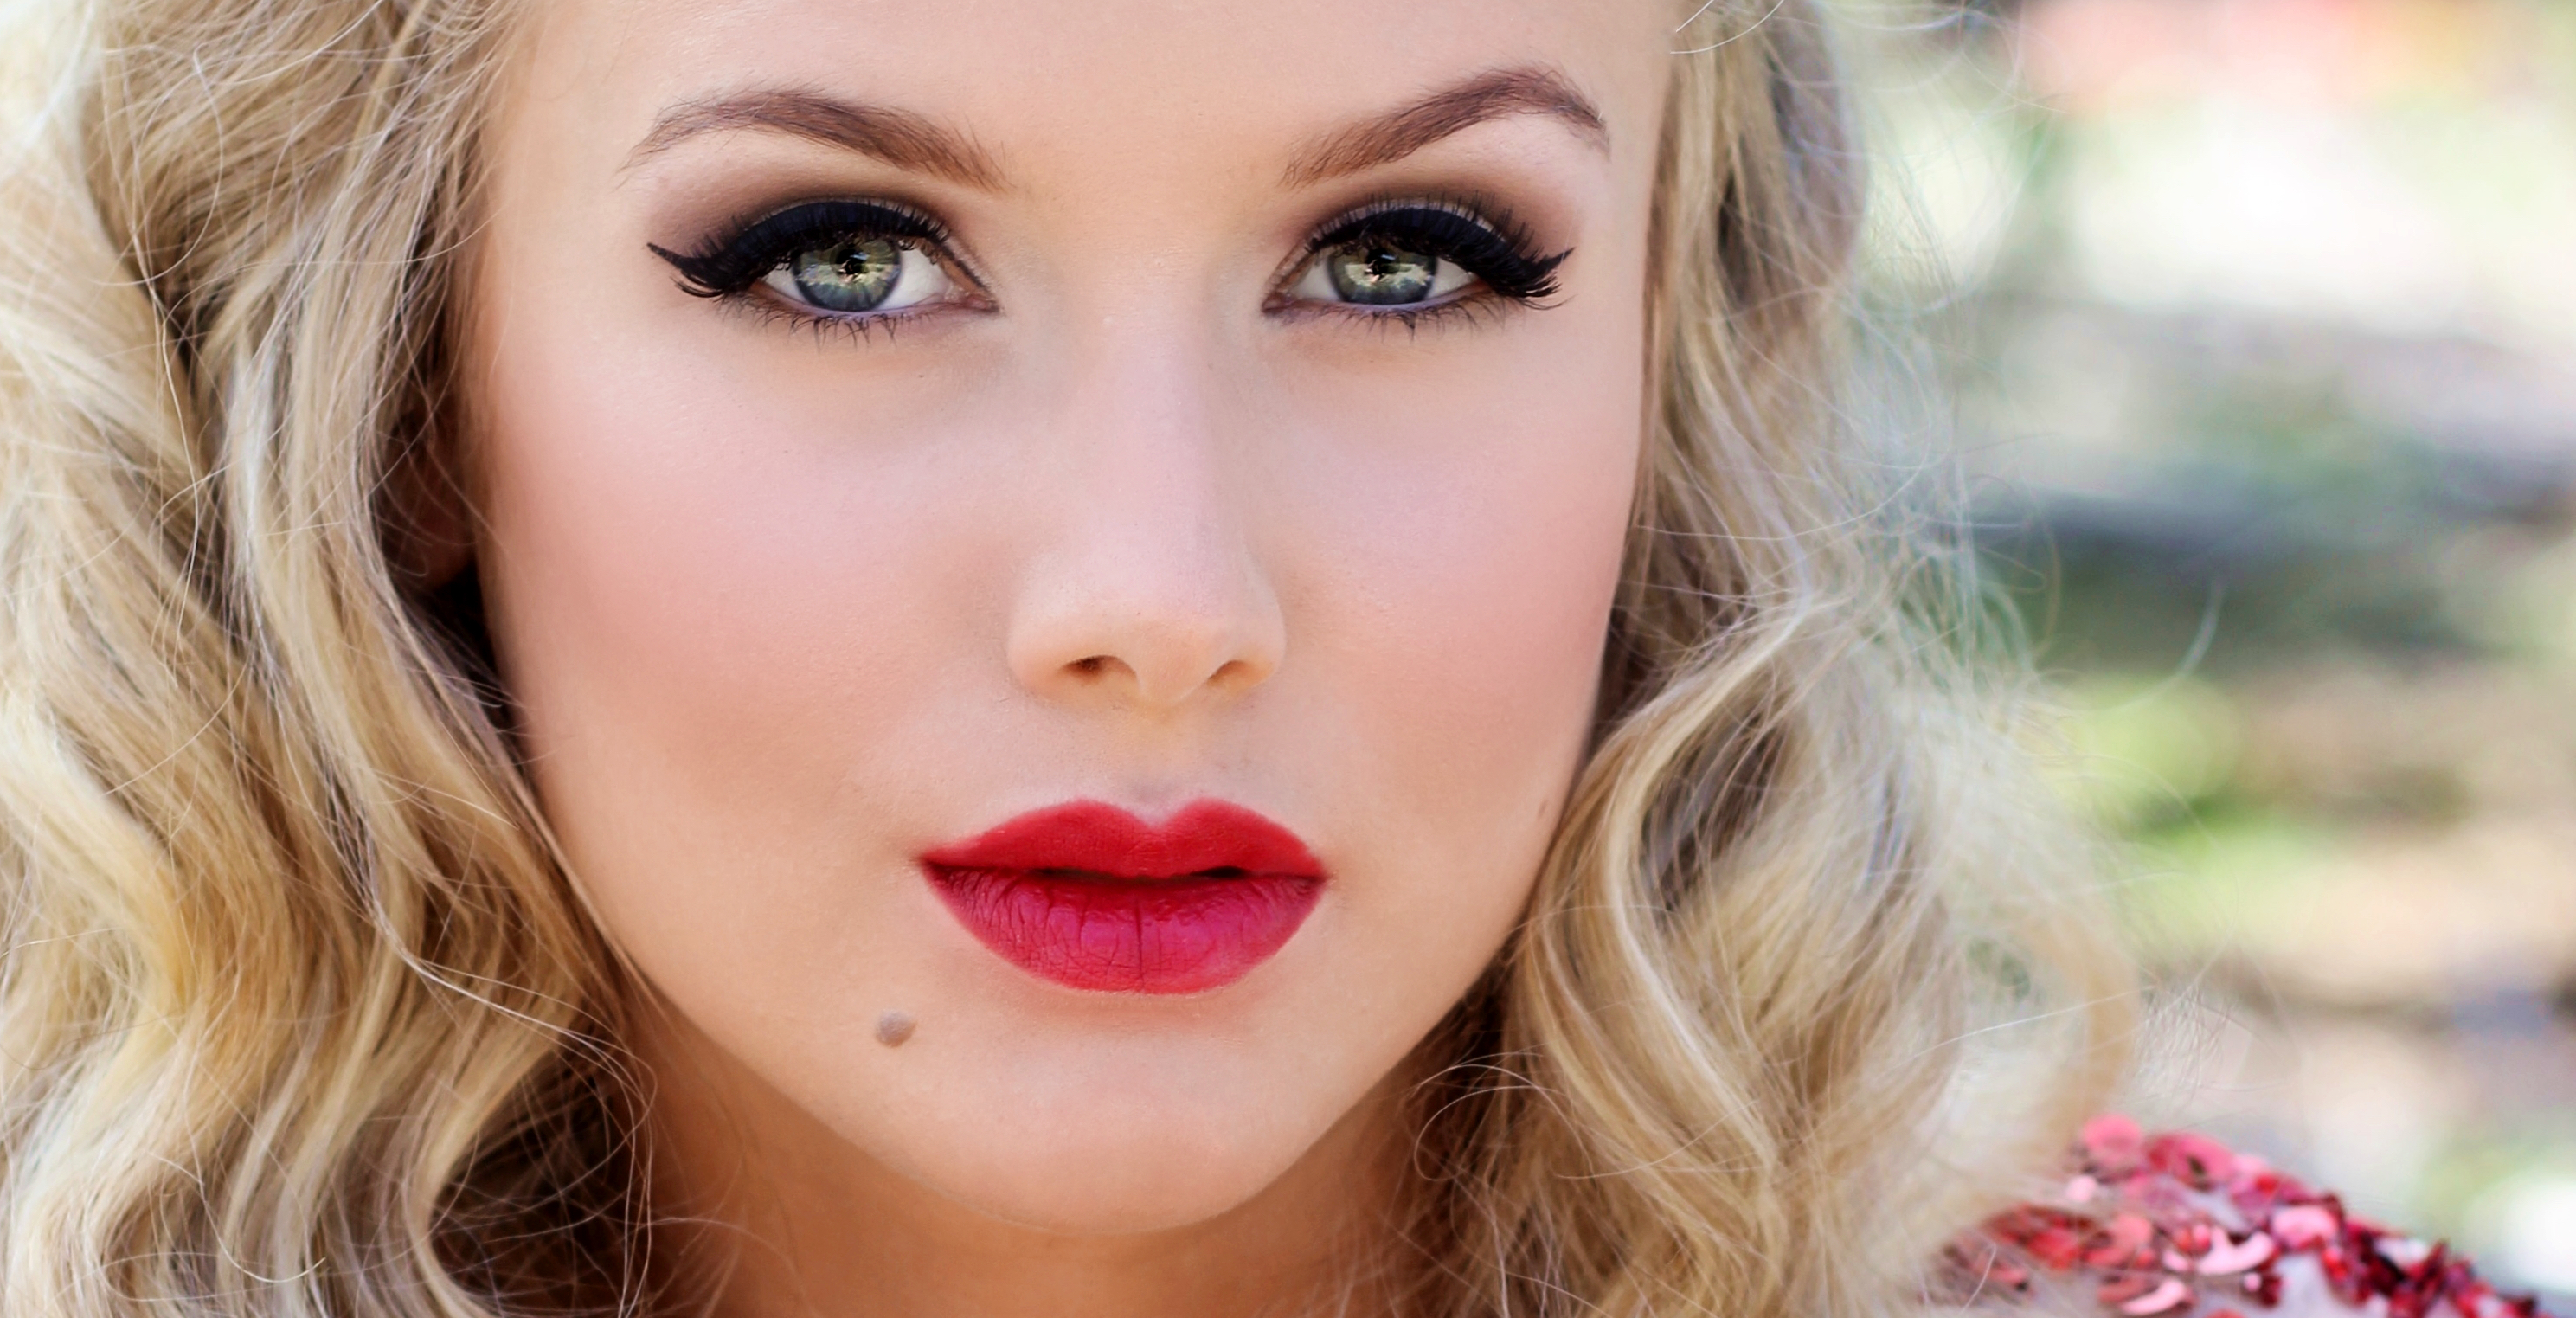 makeup, red lips, portrait, photography, blonde